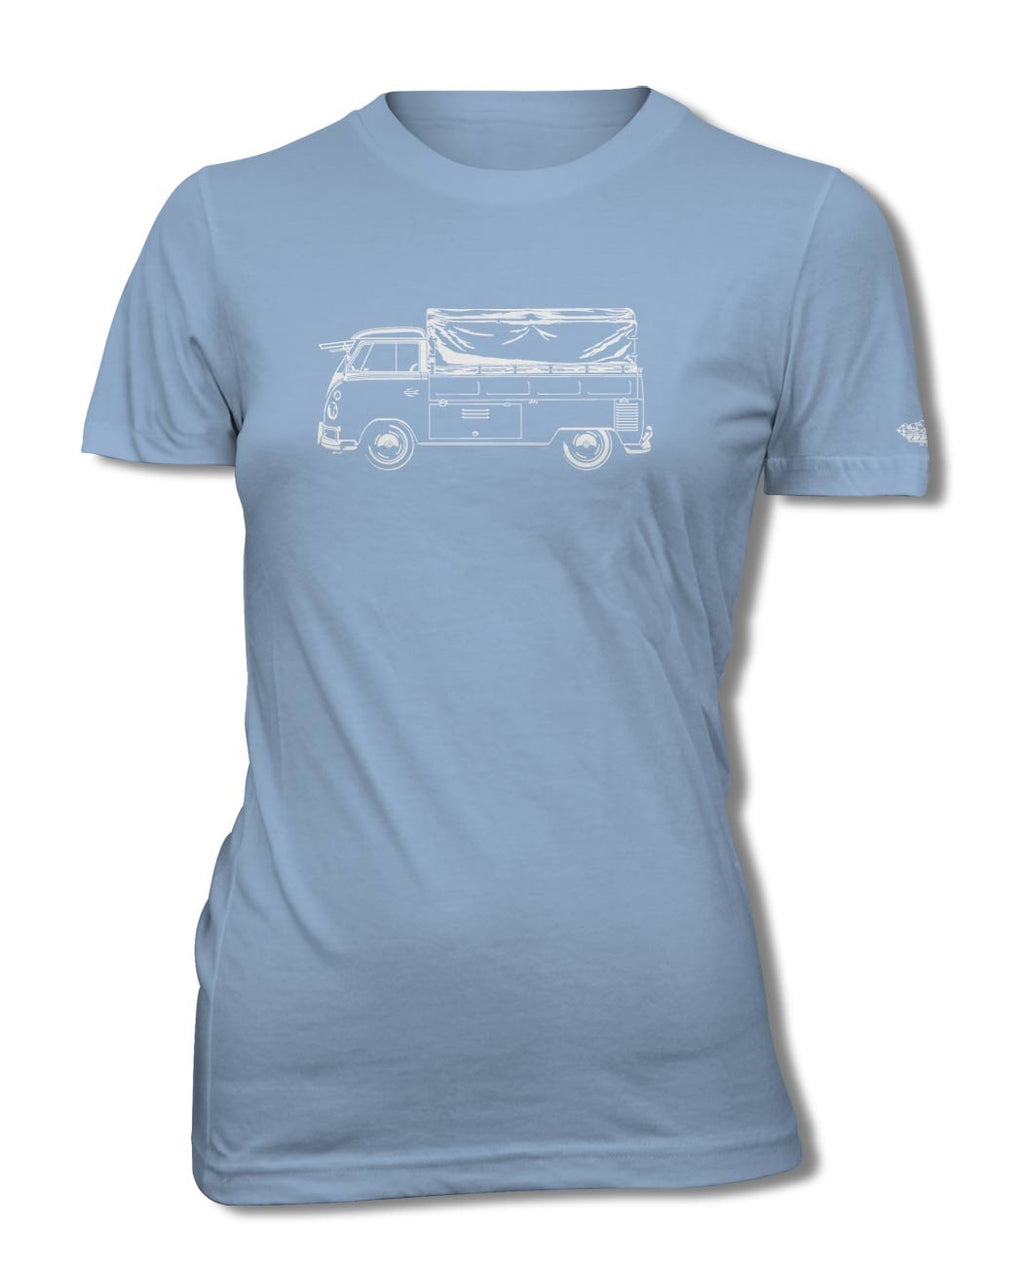 Volkswagen Kombi Utility Pickup Covered Bed T-Shirt - Women - Side View